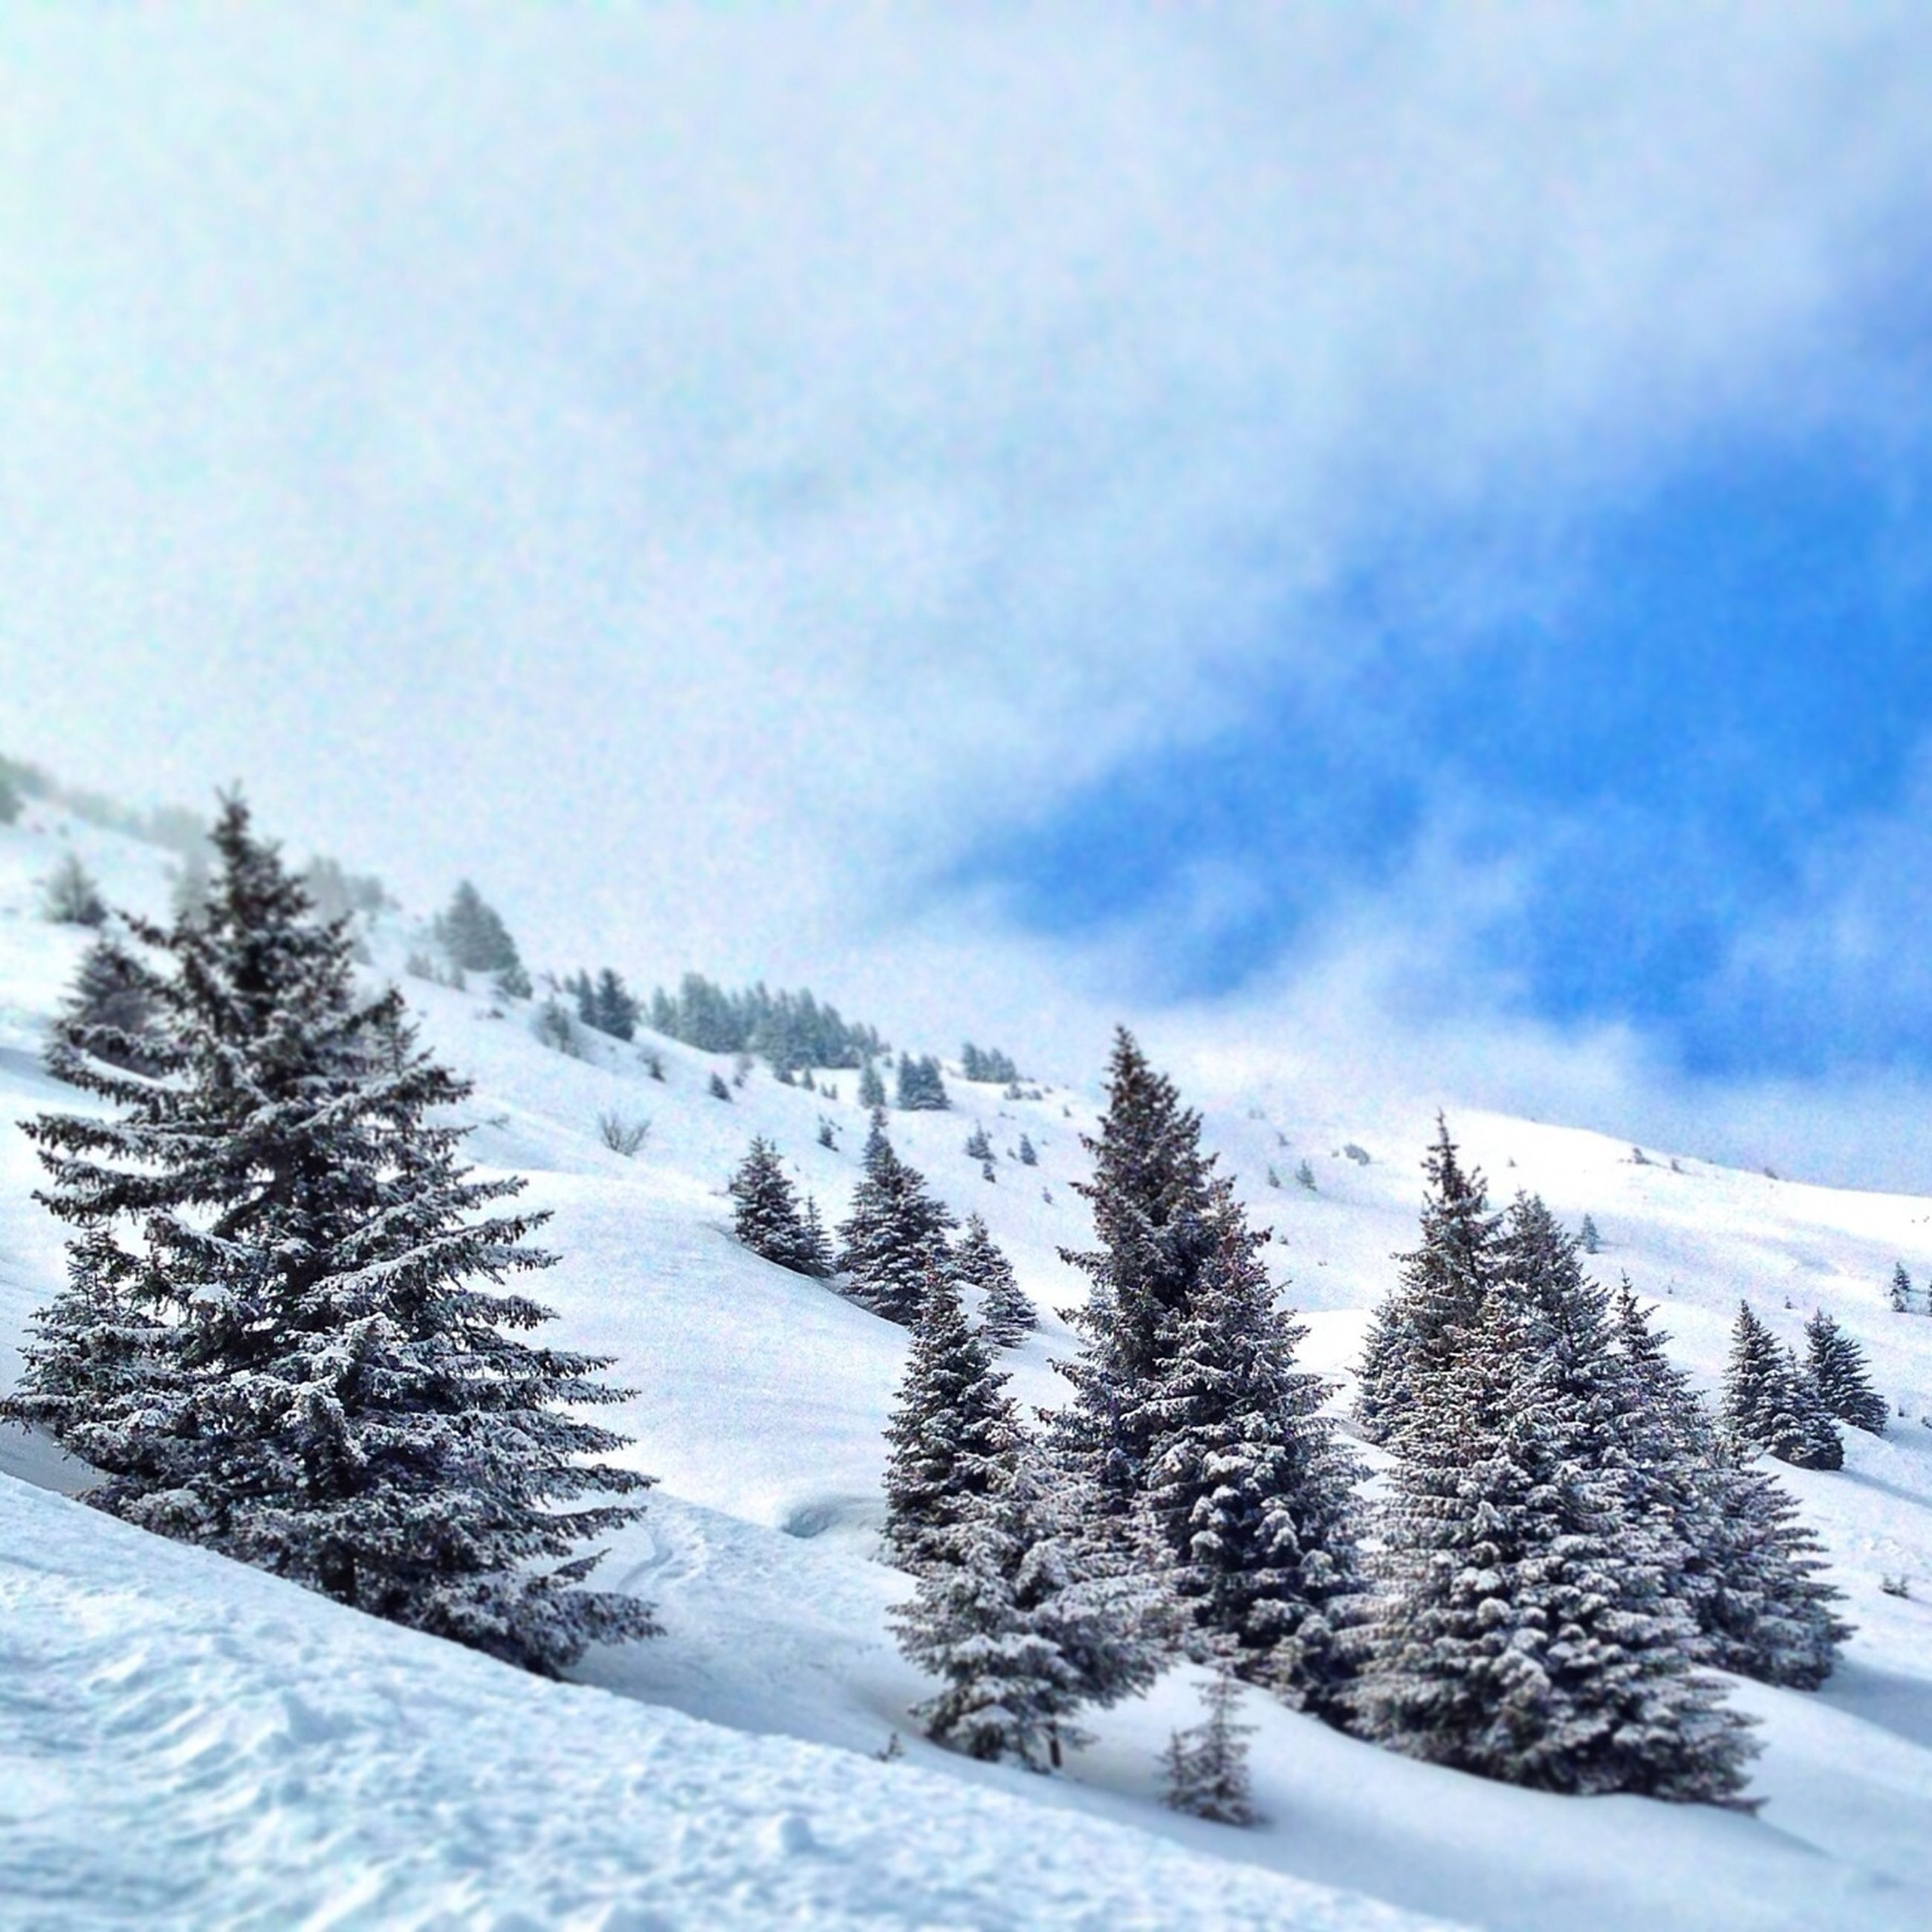 snow, winter, cold temperature, season, weather, covering, tree, frozen, tranquil scene, tranquility, sky, beauty in nature, nature, scenics, covered, white color, landscape, snow covered, snowcapped mountain, snowcapped